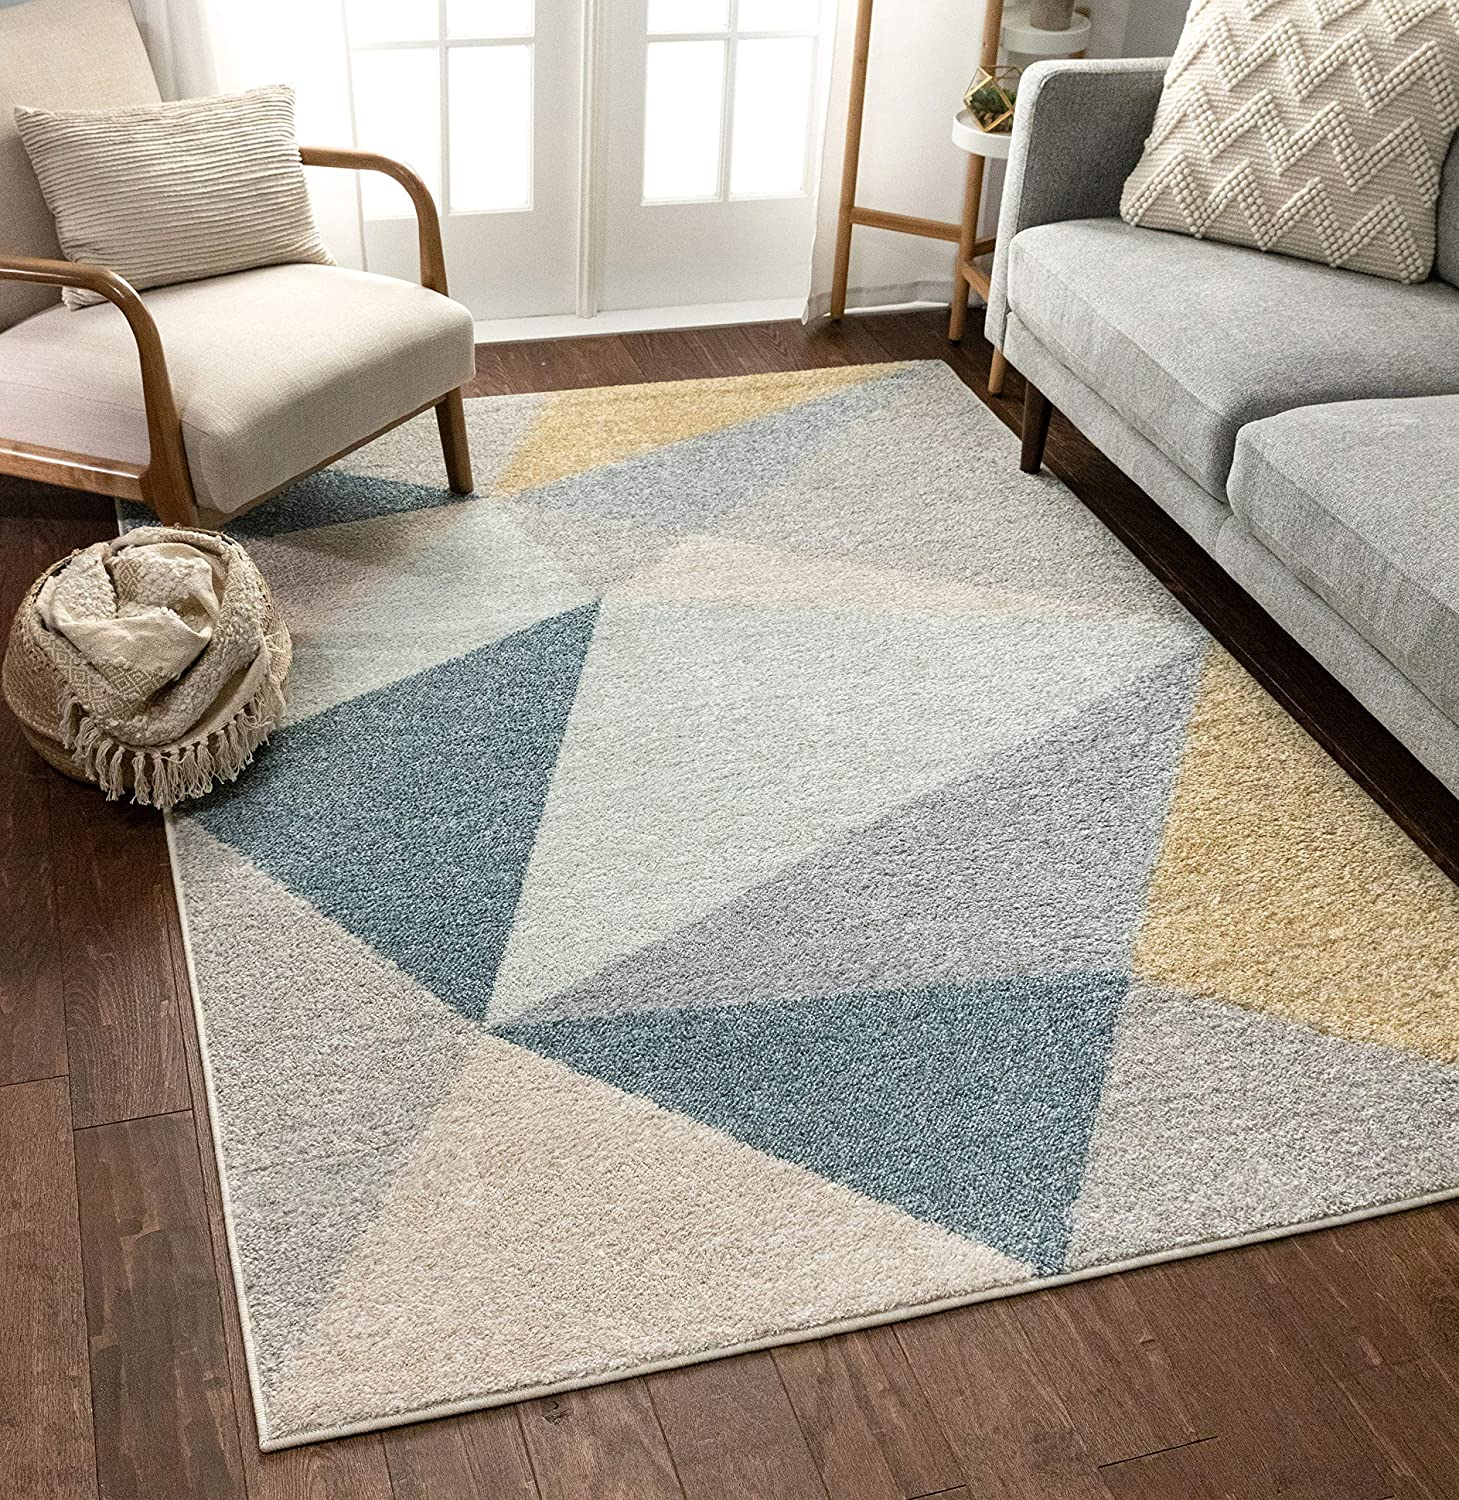 Amazon Com Well Woven Easton Modern Abstract Geometric Triangles Blue Gold Grey Area Rug 5x7 5 3 X 7 3 Home Kitchen